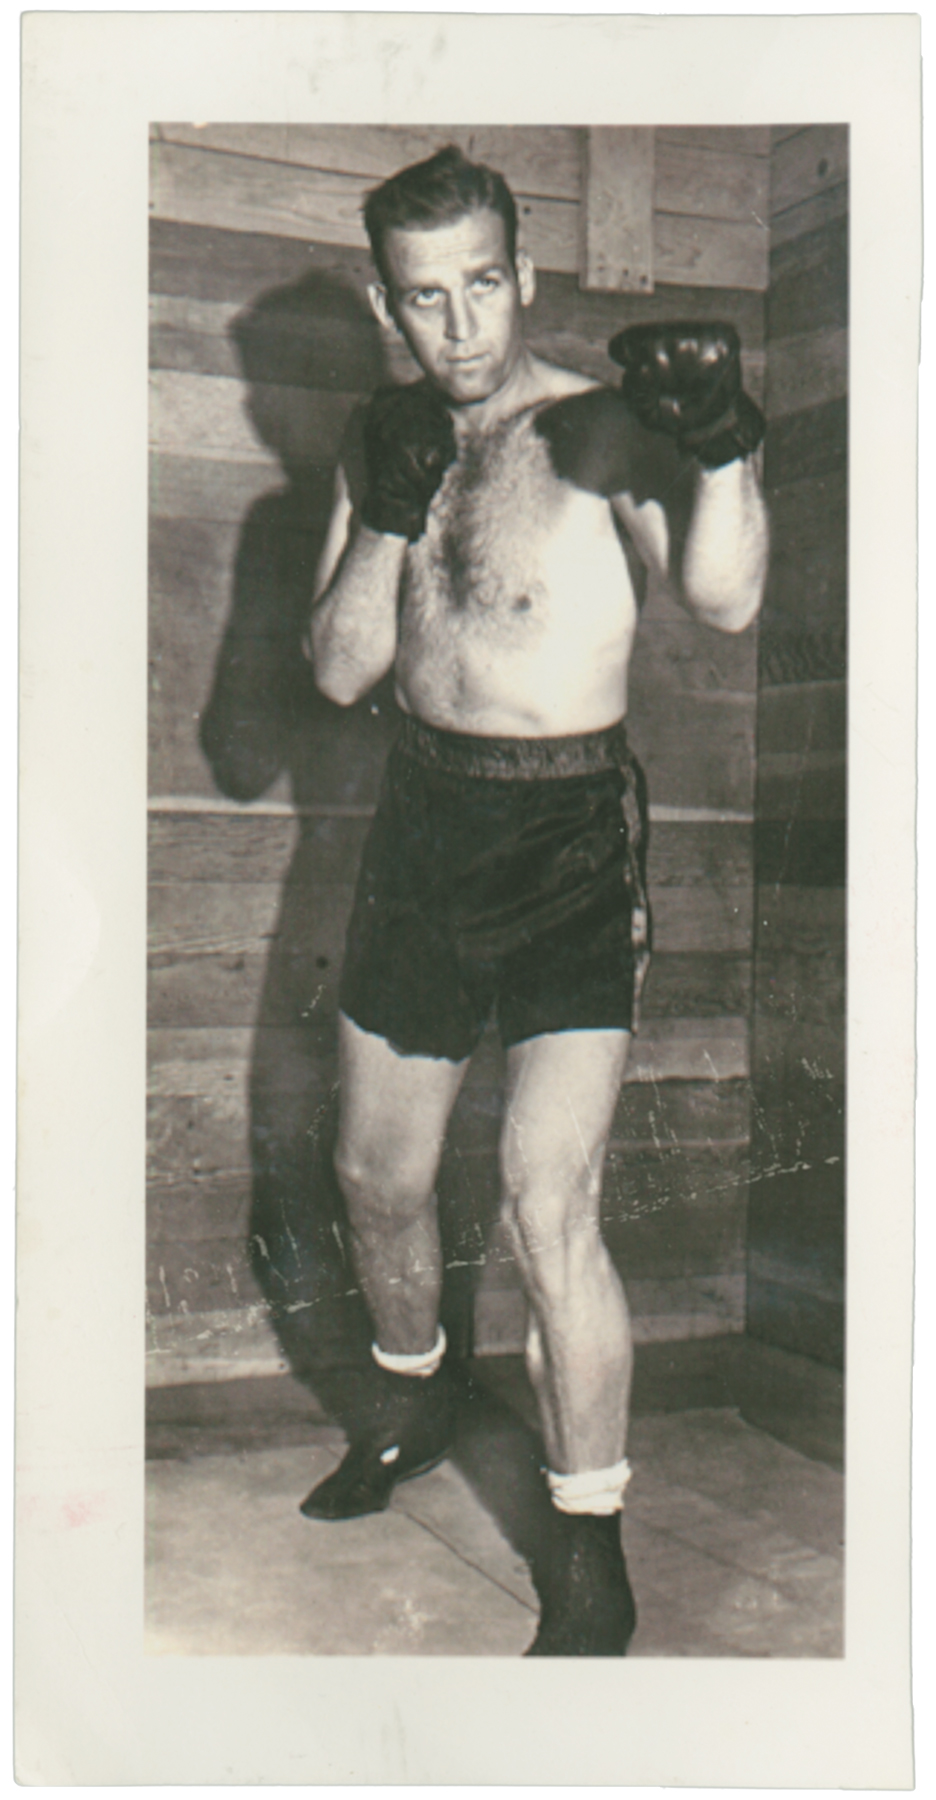 Doc Dolan as a light heavyweight boxer in the Army